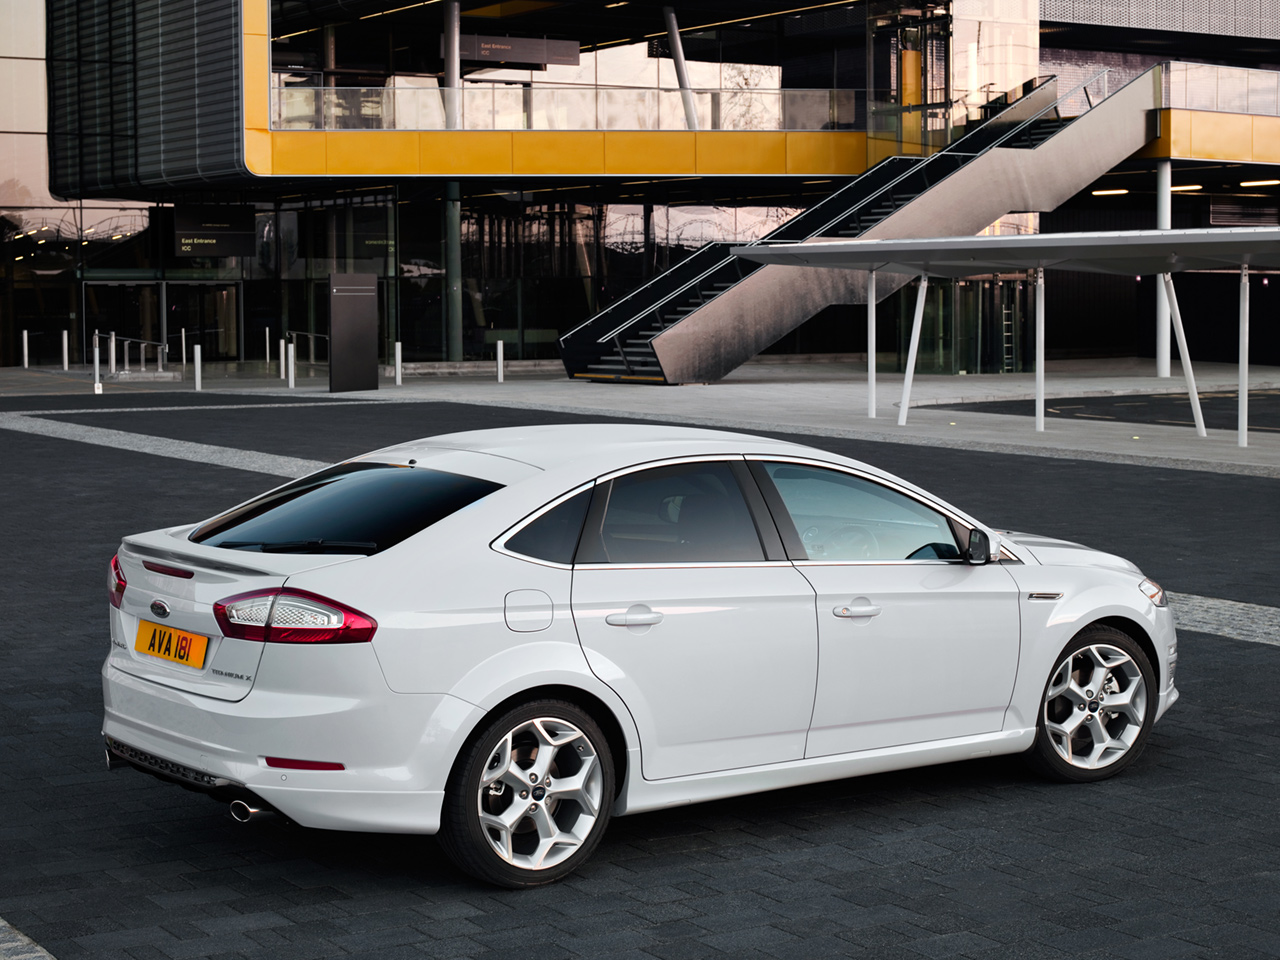 Ford Mondeo Hatchback: 04 фото